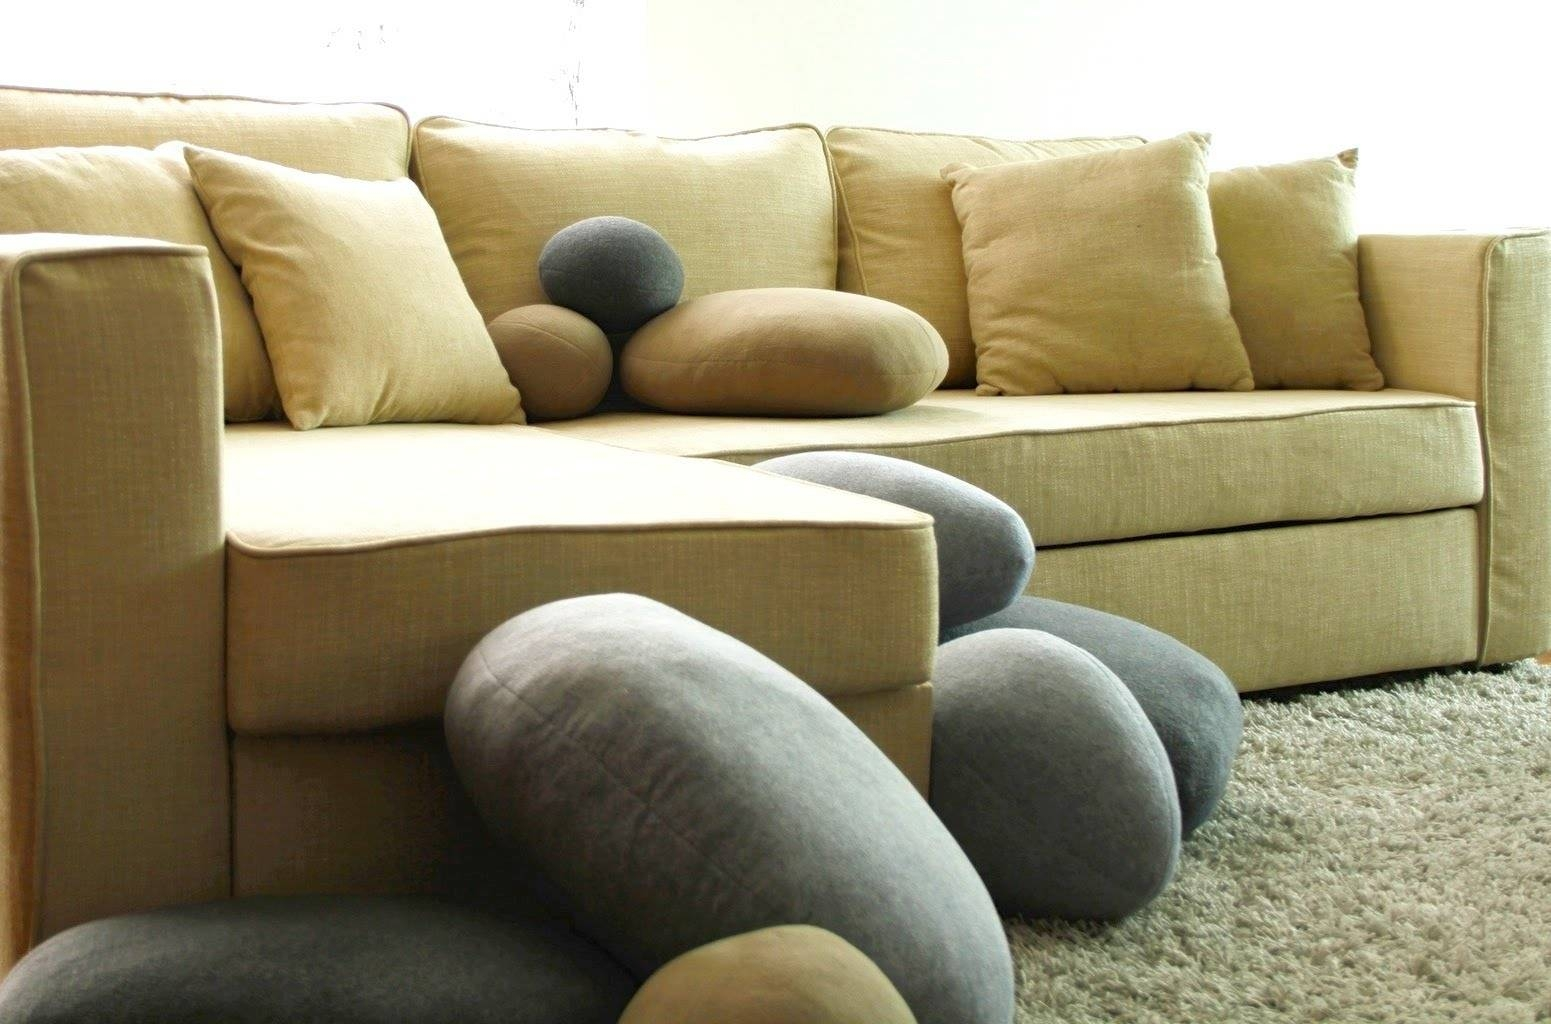 Slipcover For Ikea Manstad Sofa Bed - Snug Fit Version - Youtube for Manstad Sofa Bed With Storage From Ikea (Image 21 of 25)